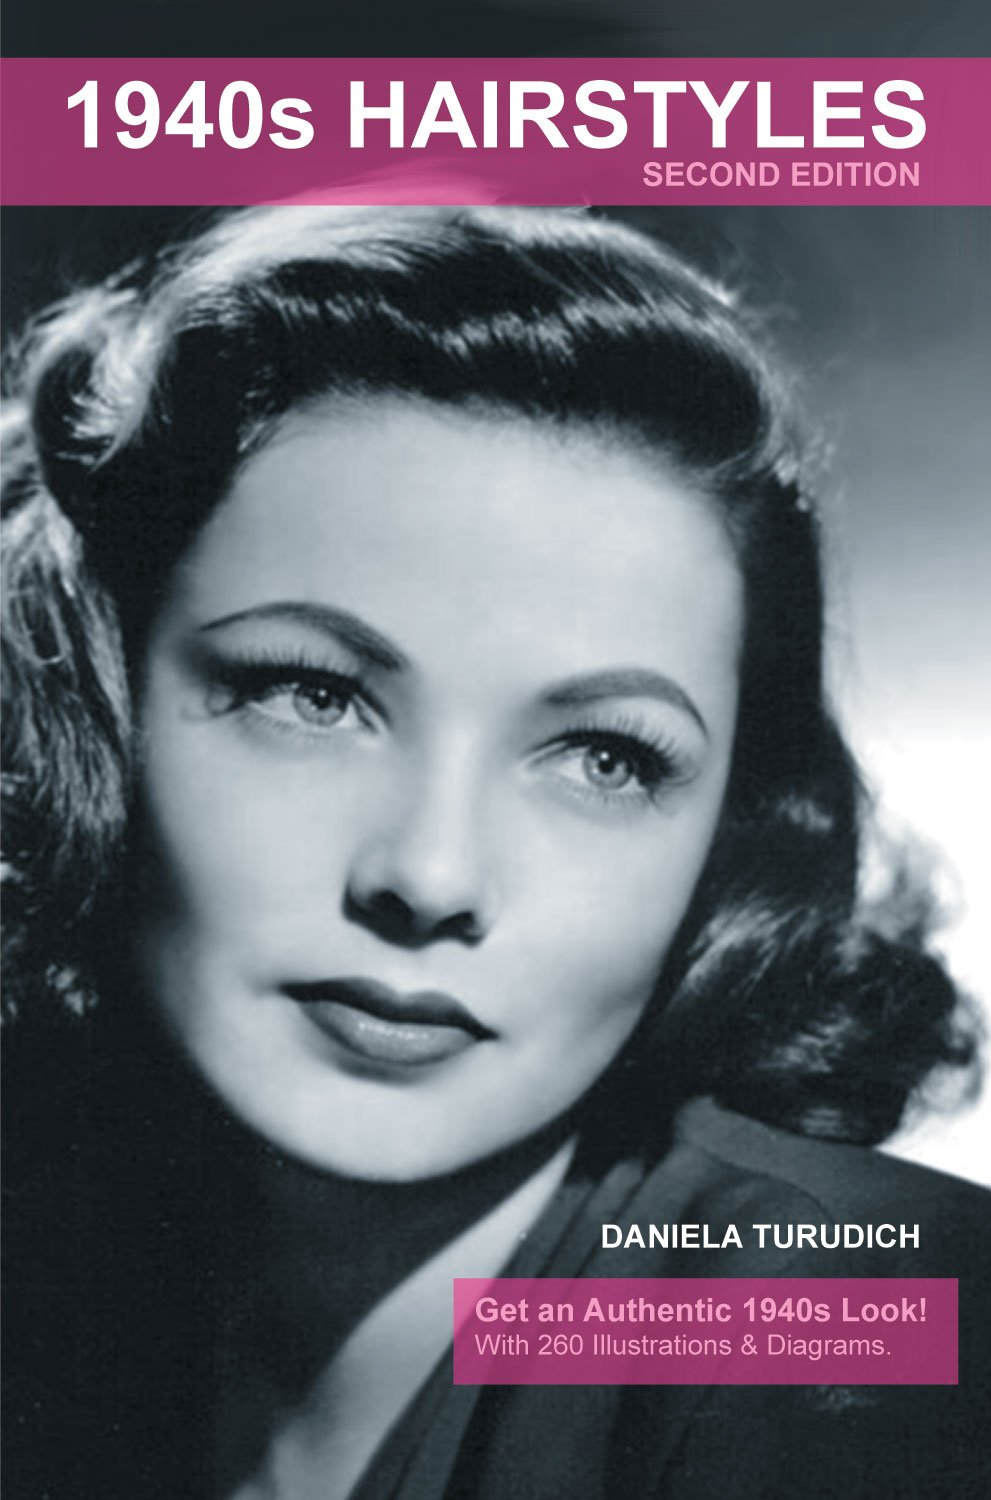 1940s Hairstyles Vintage Living Daniela Turudich 9781930064003